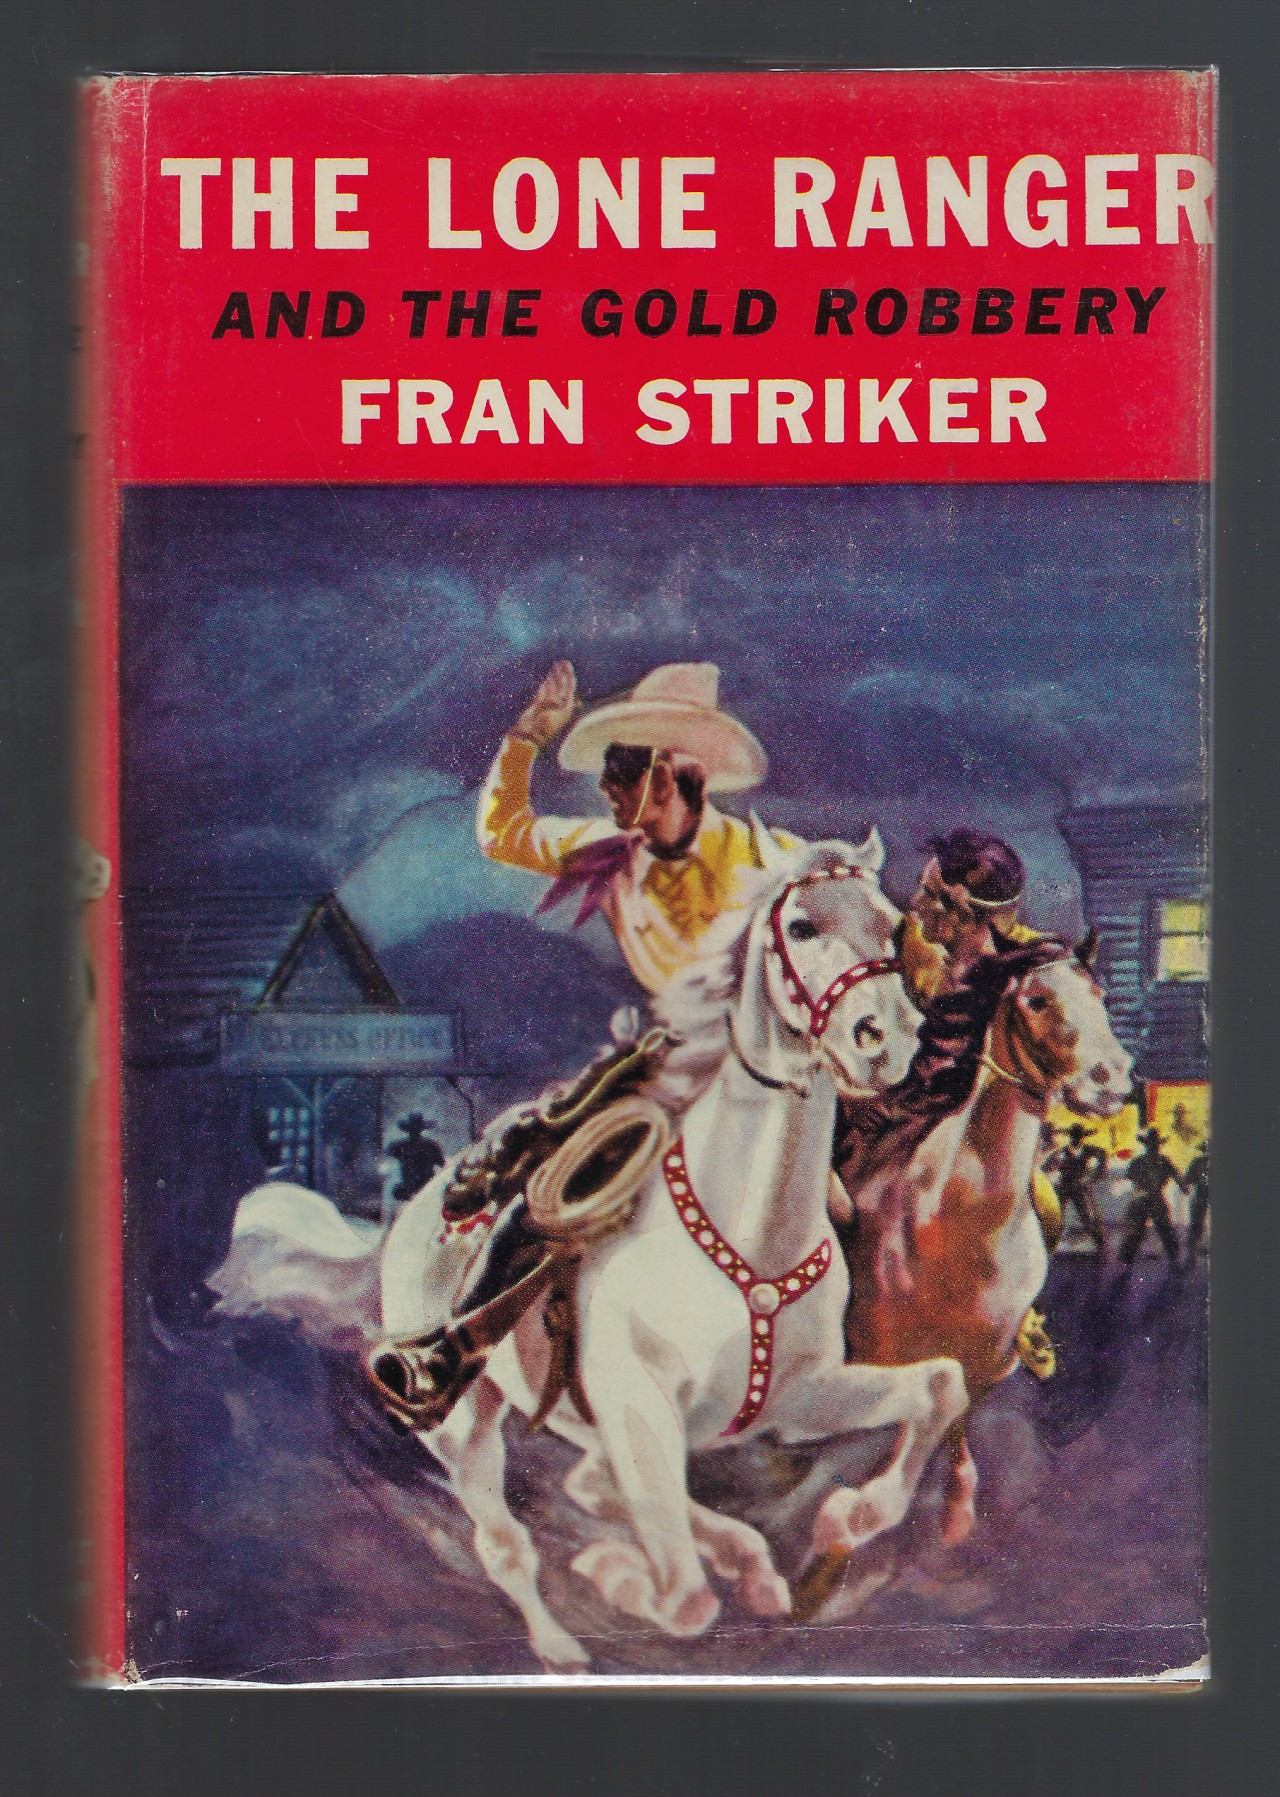 The Lone Ranger and the Gold Robbery #3 (VG) Fran Striker HB/DJ, Fran Striker